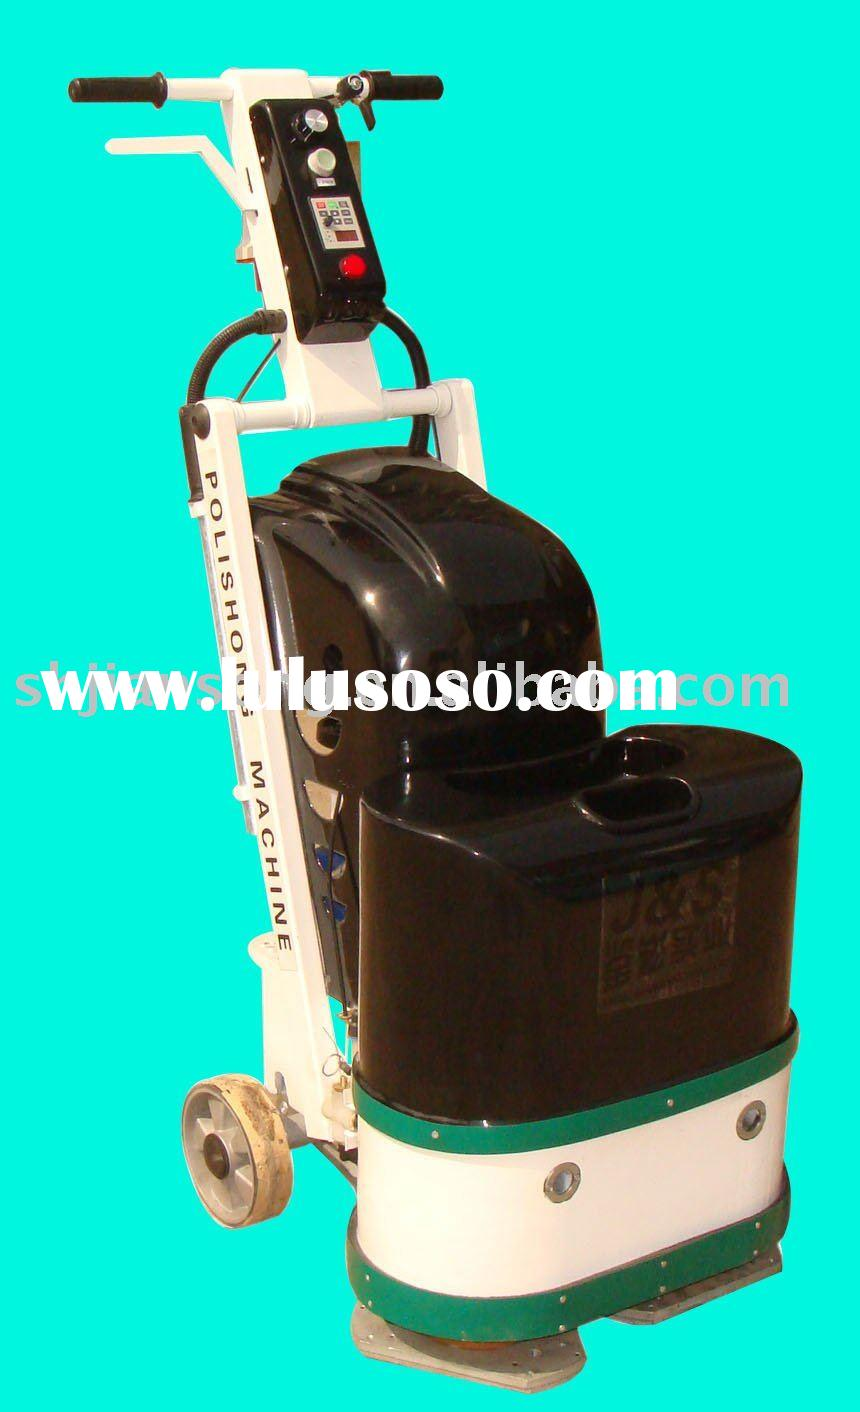 two-head concrete and marble and stone grinder and polisher machine